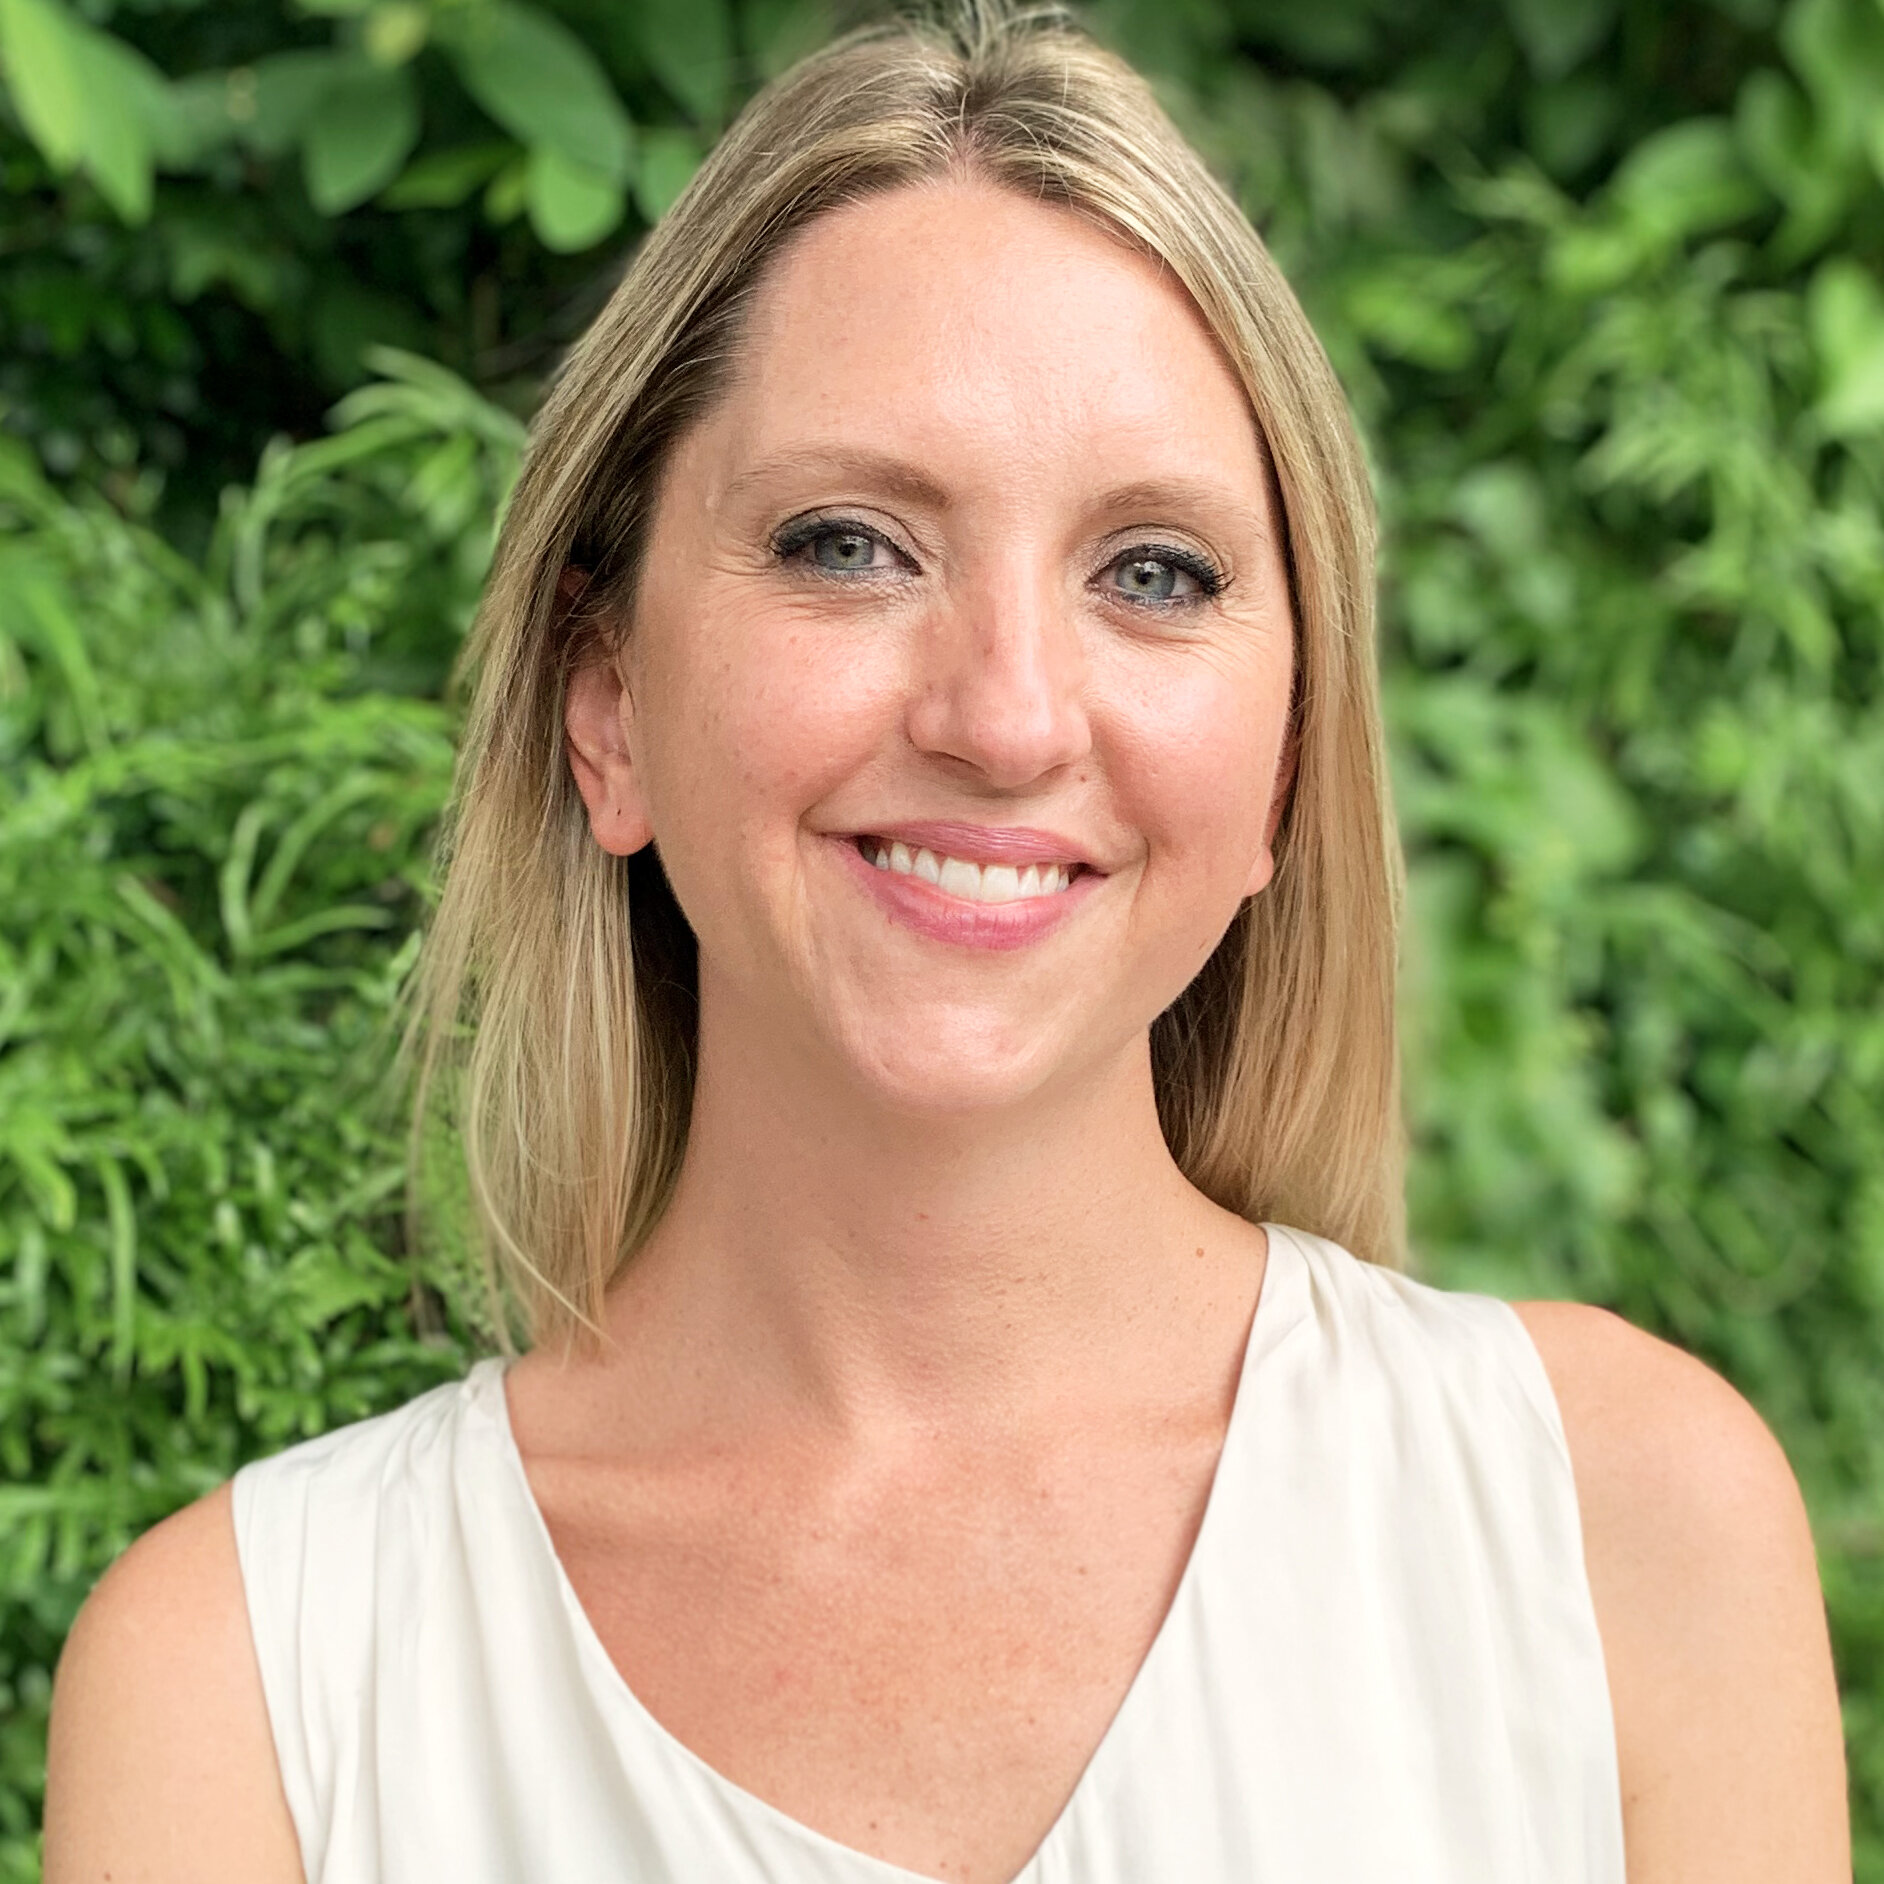 Dr. Katie T. Larson - Dr. Katie T. Larson is a Growth Coach and founder of GrowthQuests. She takes her clients on holistic